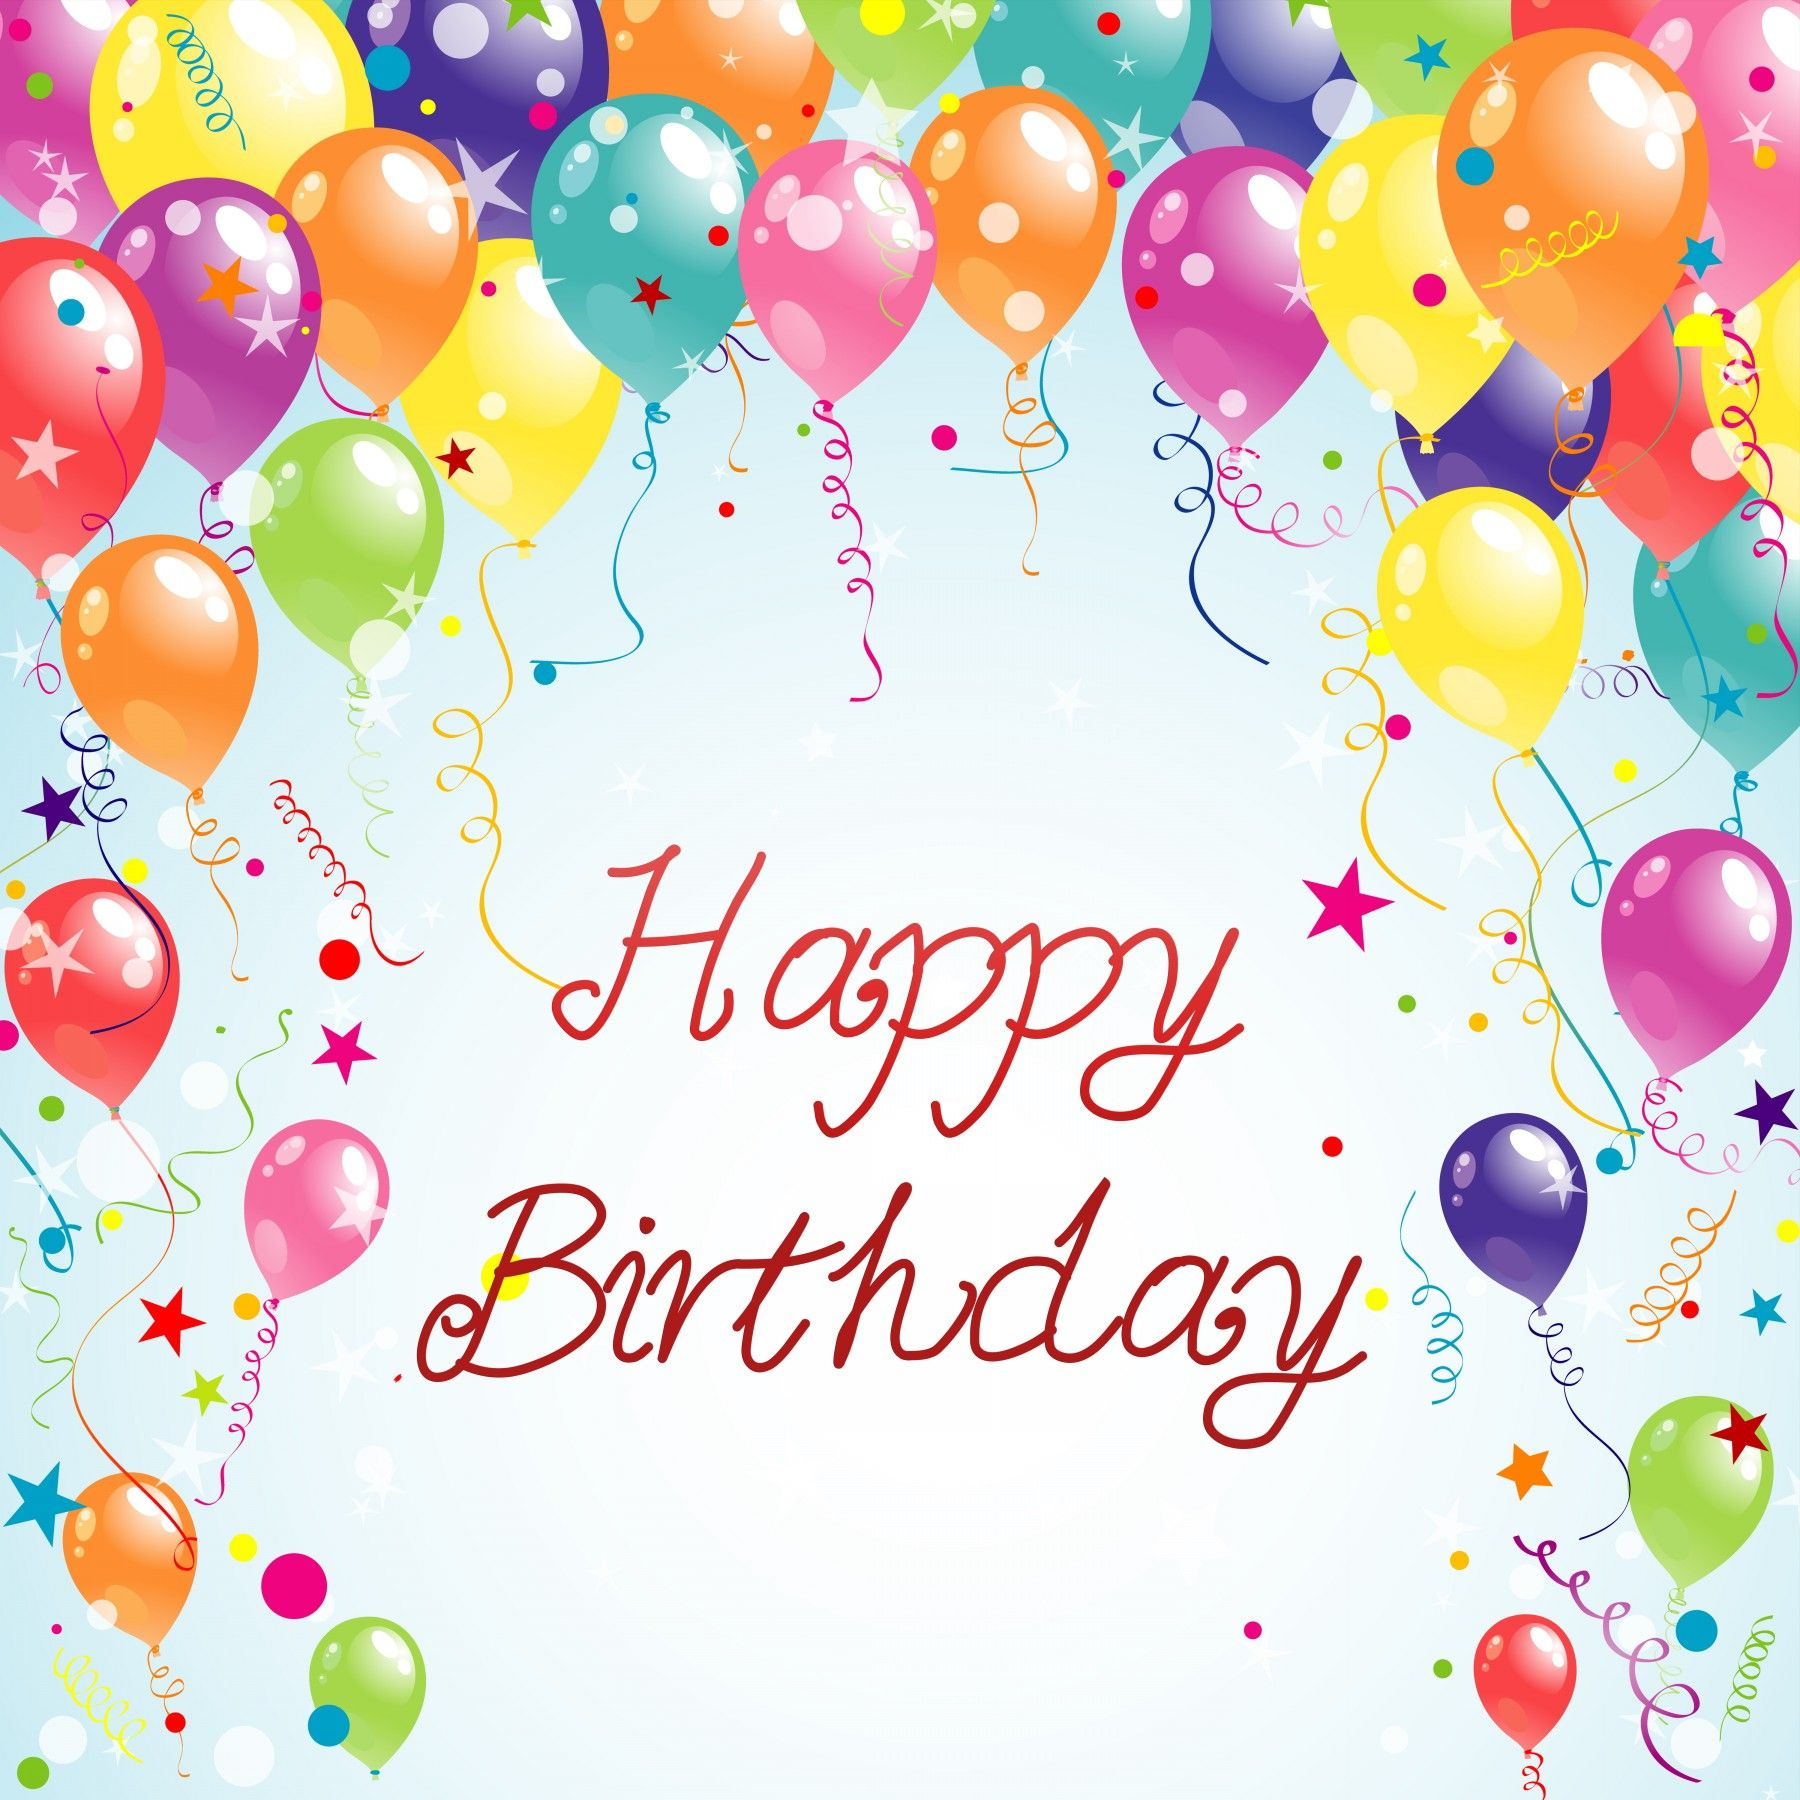 birthday cards images Happy Birthday Pinterest – Virtual Cards Birthday